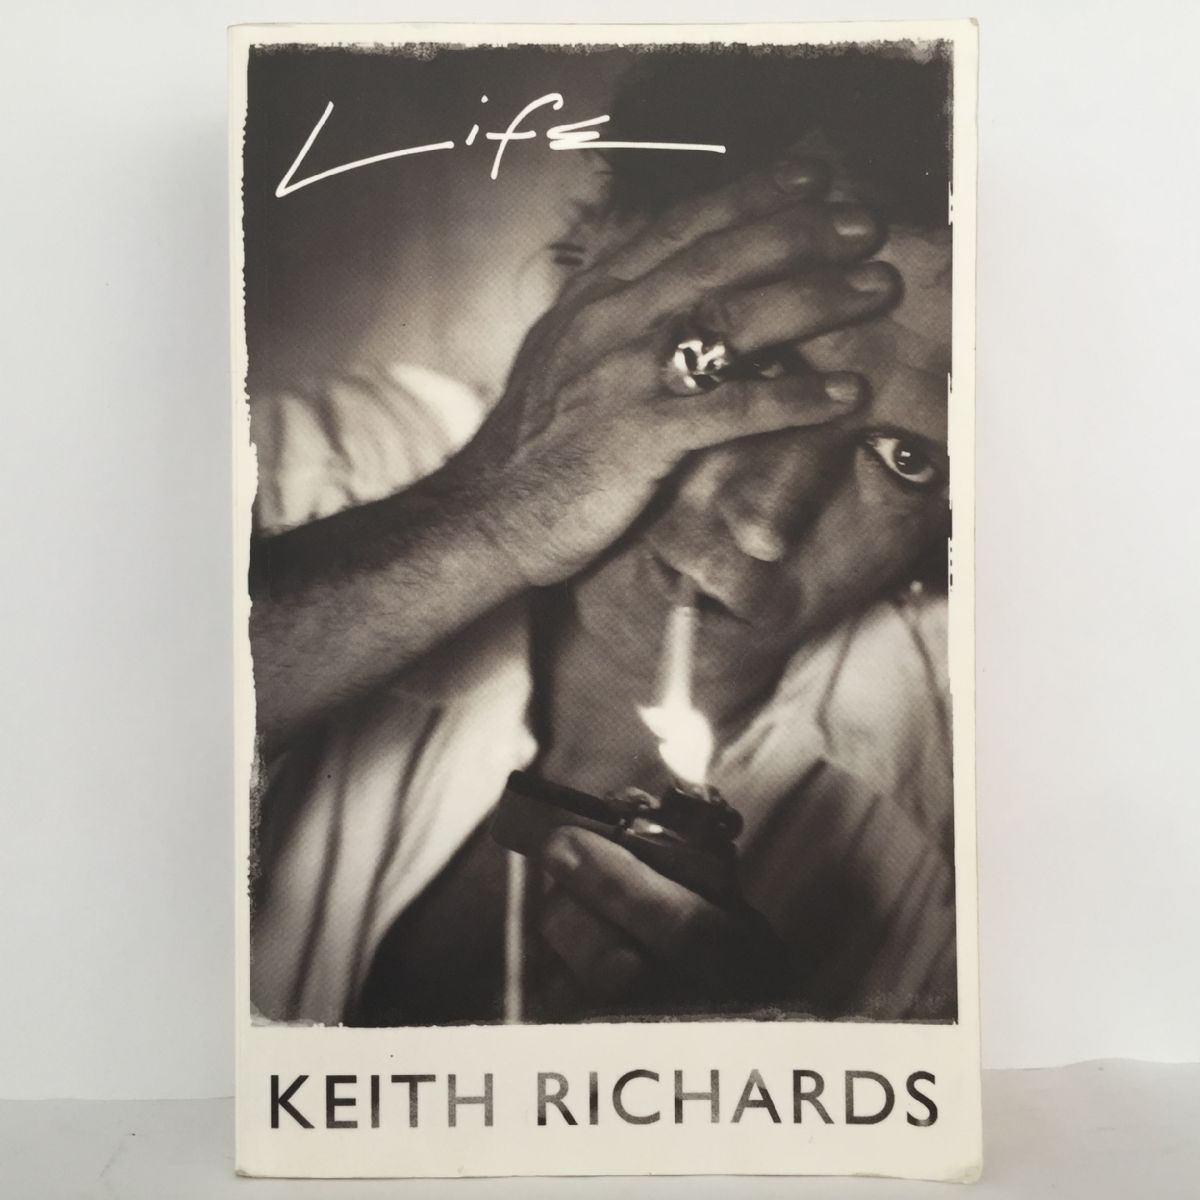 LIFE : Keith Richards